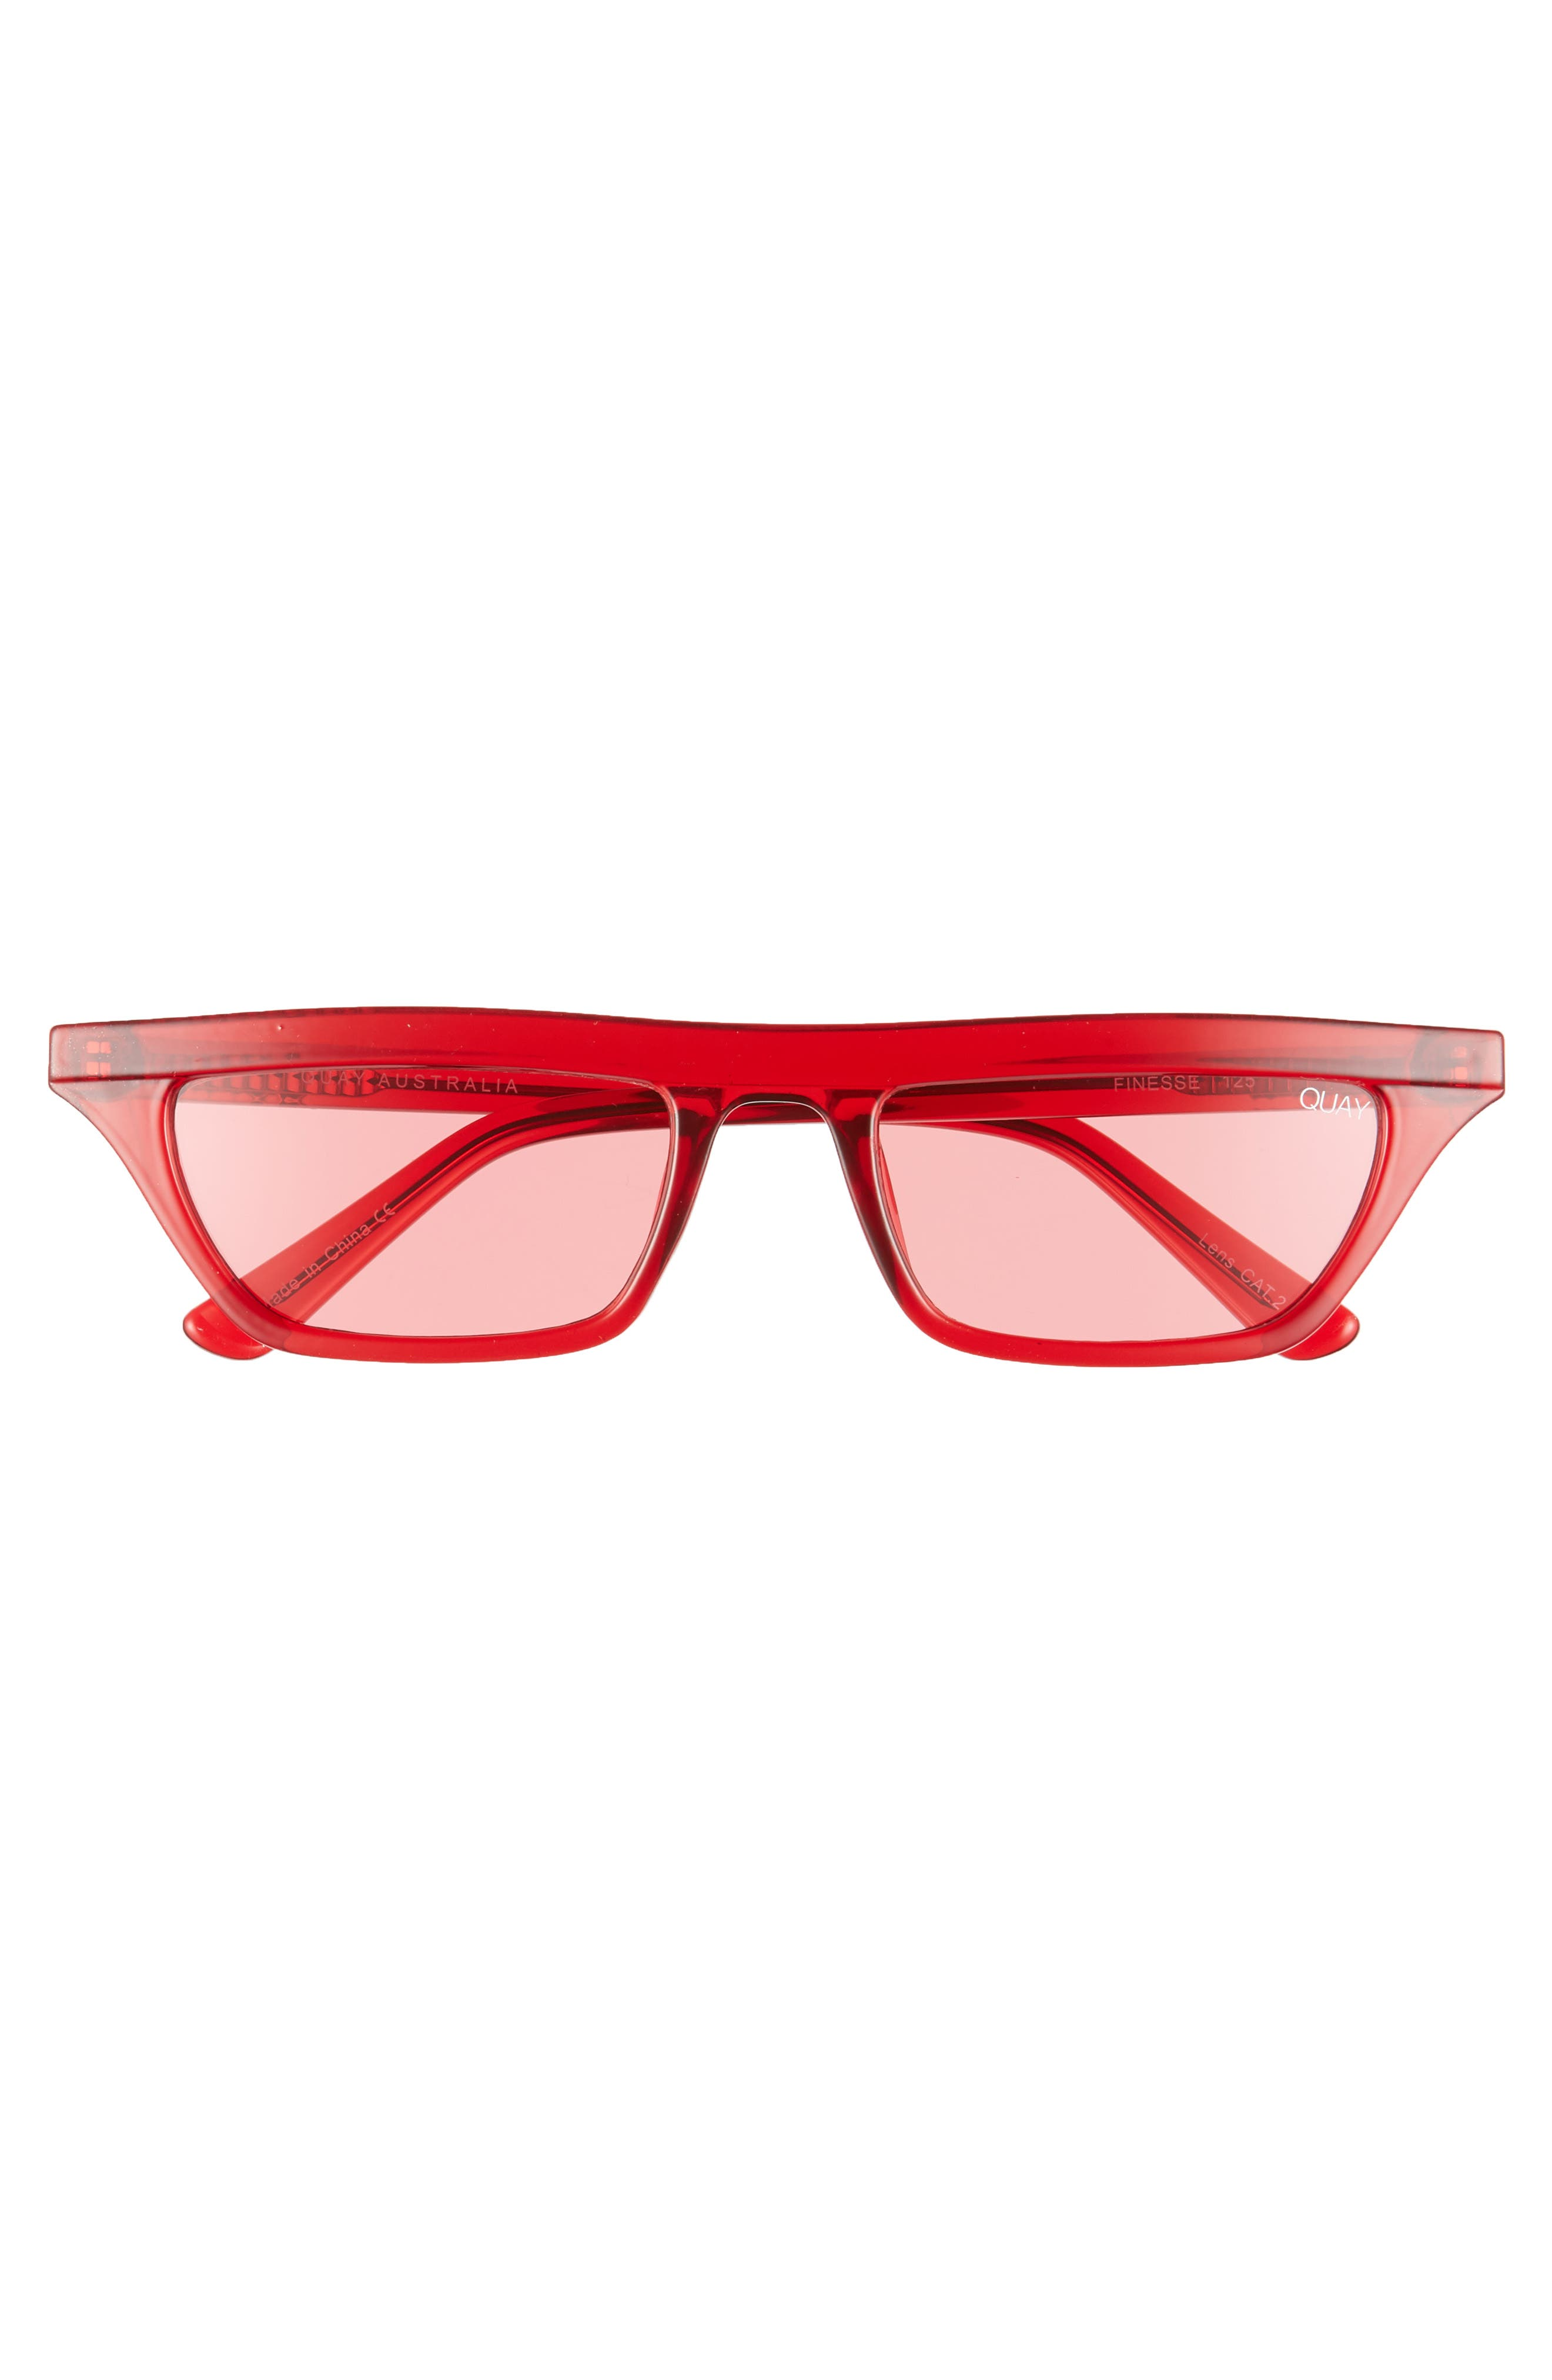 Finesse 52mm Sunglasses,                             Alternate thumbnail 3, color,                             600